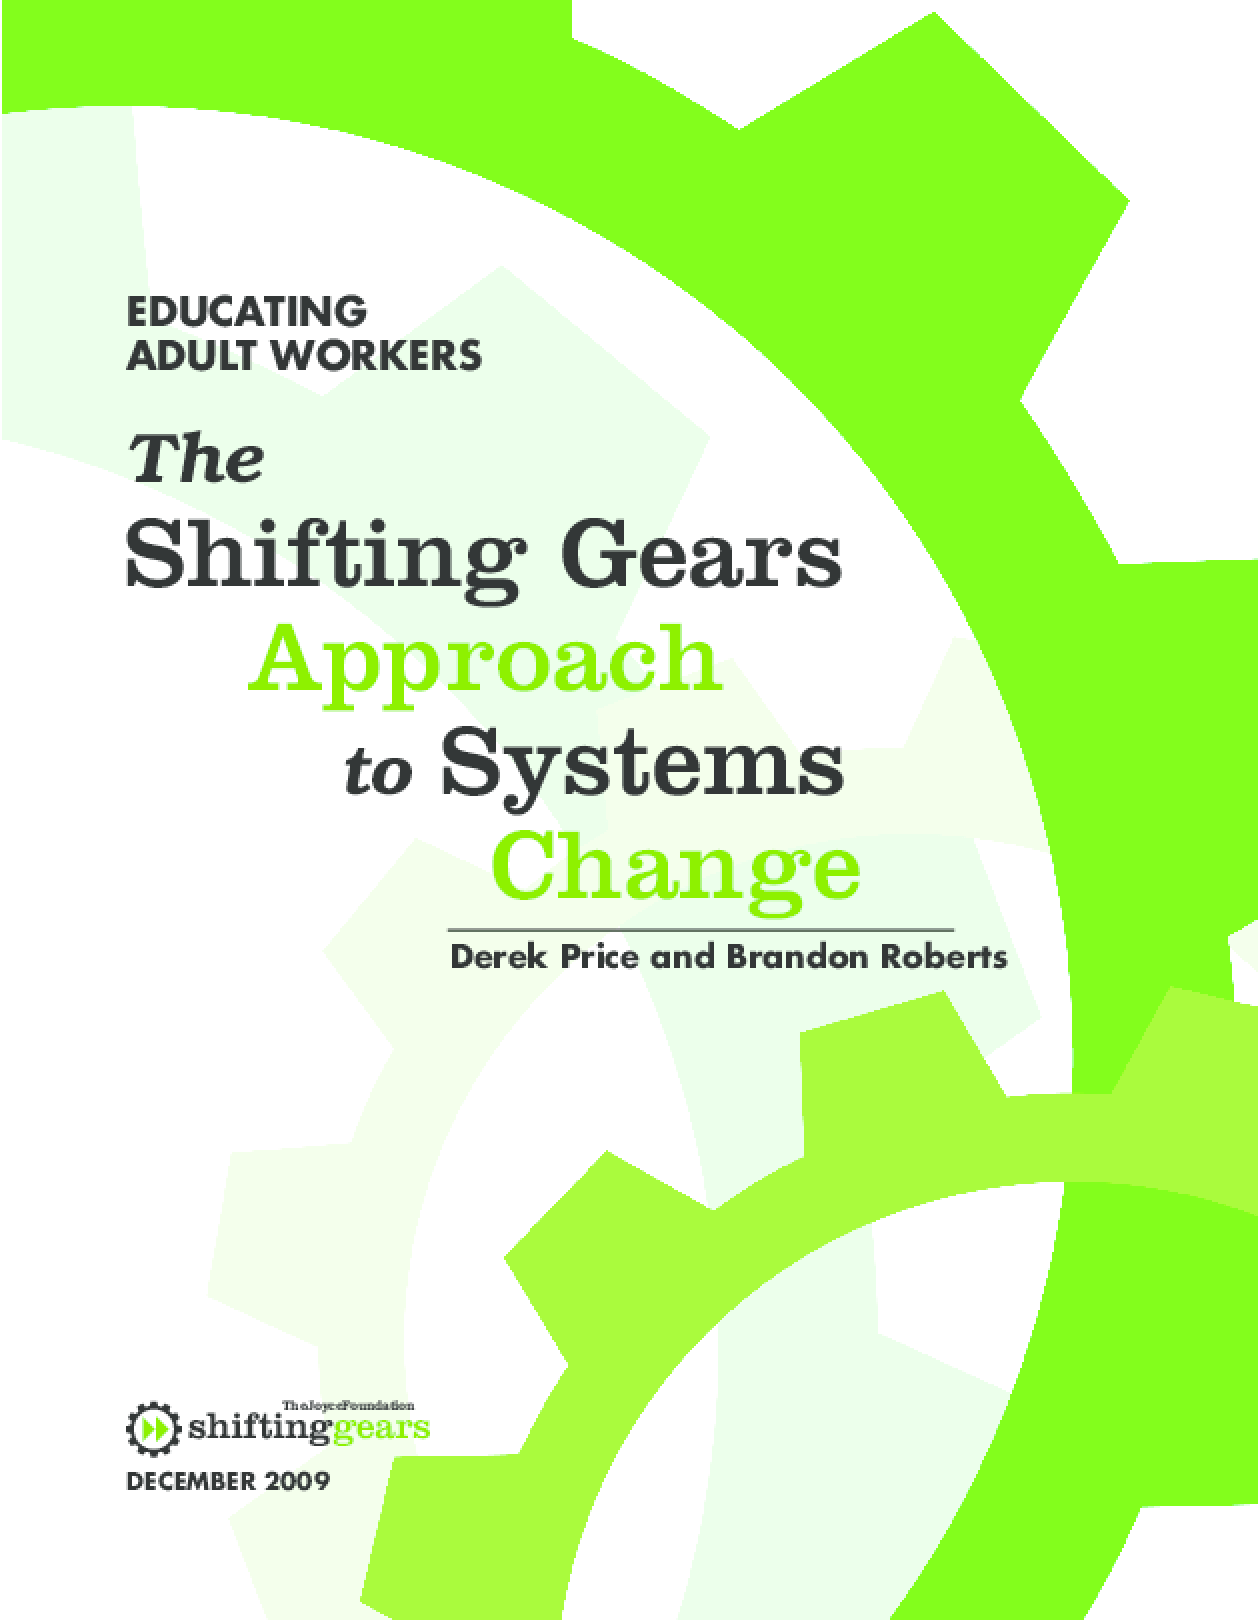 The Shifting Gears Approach to Systems Change